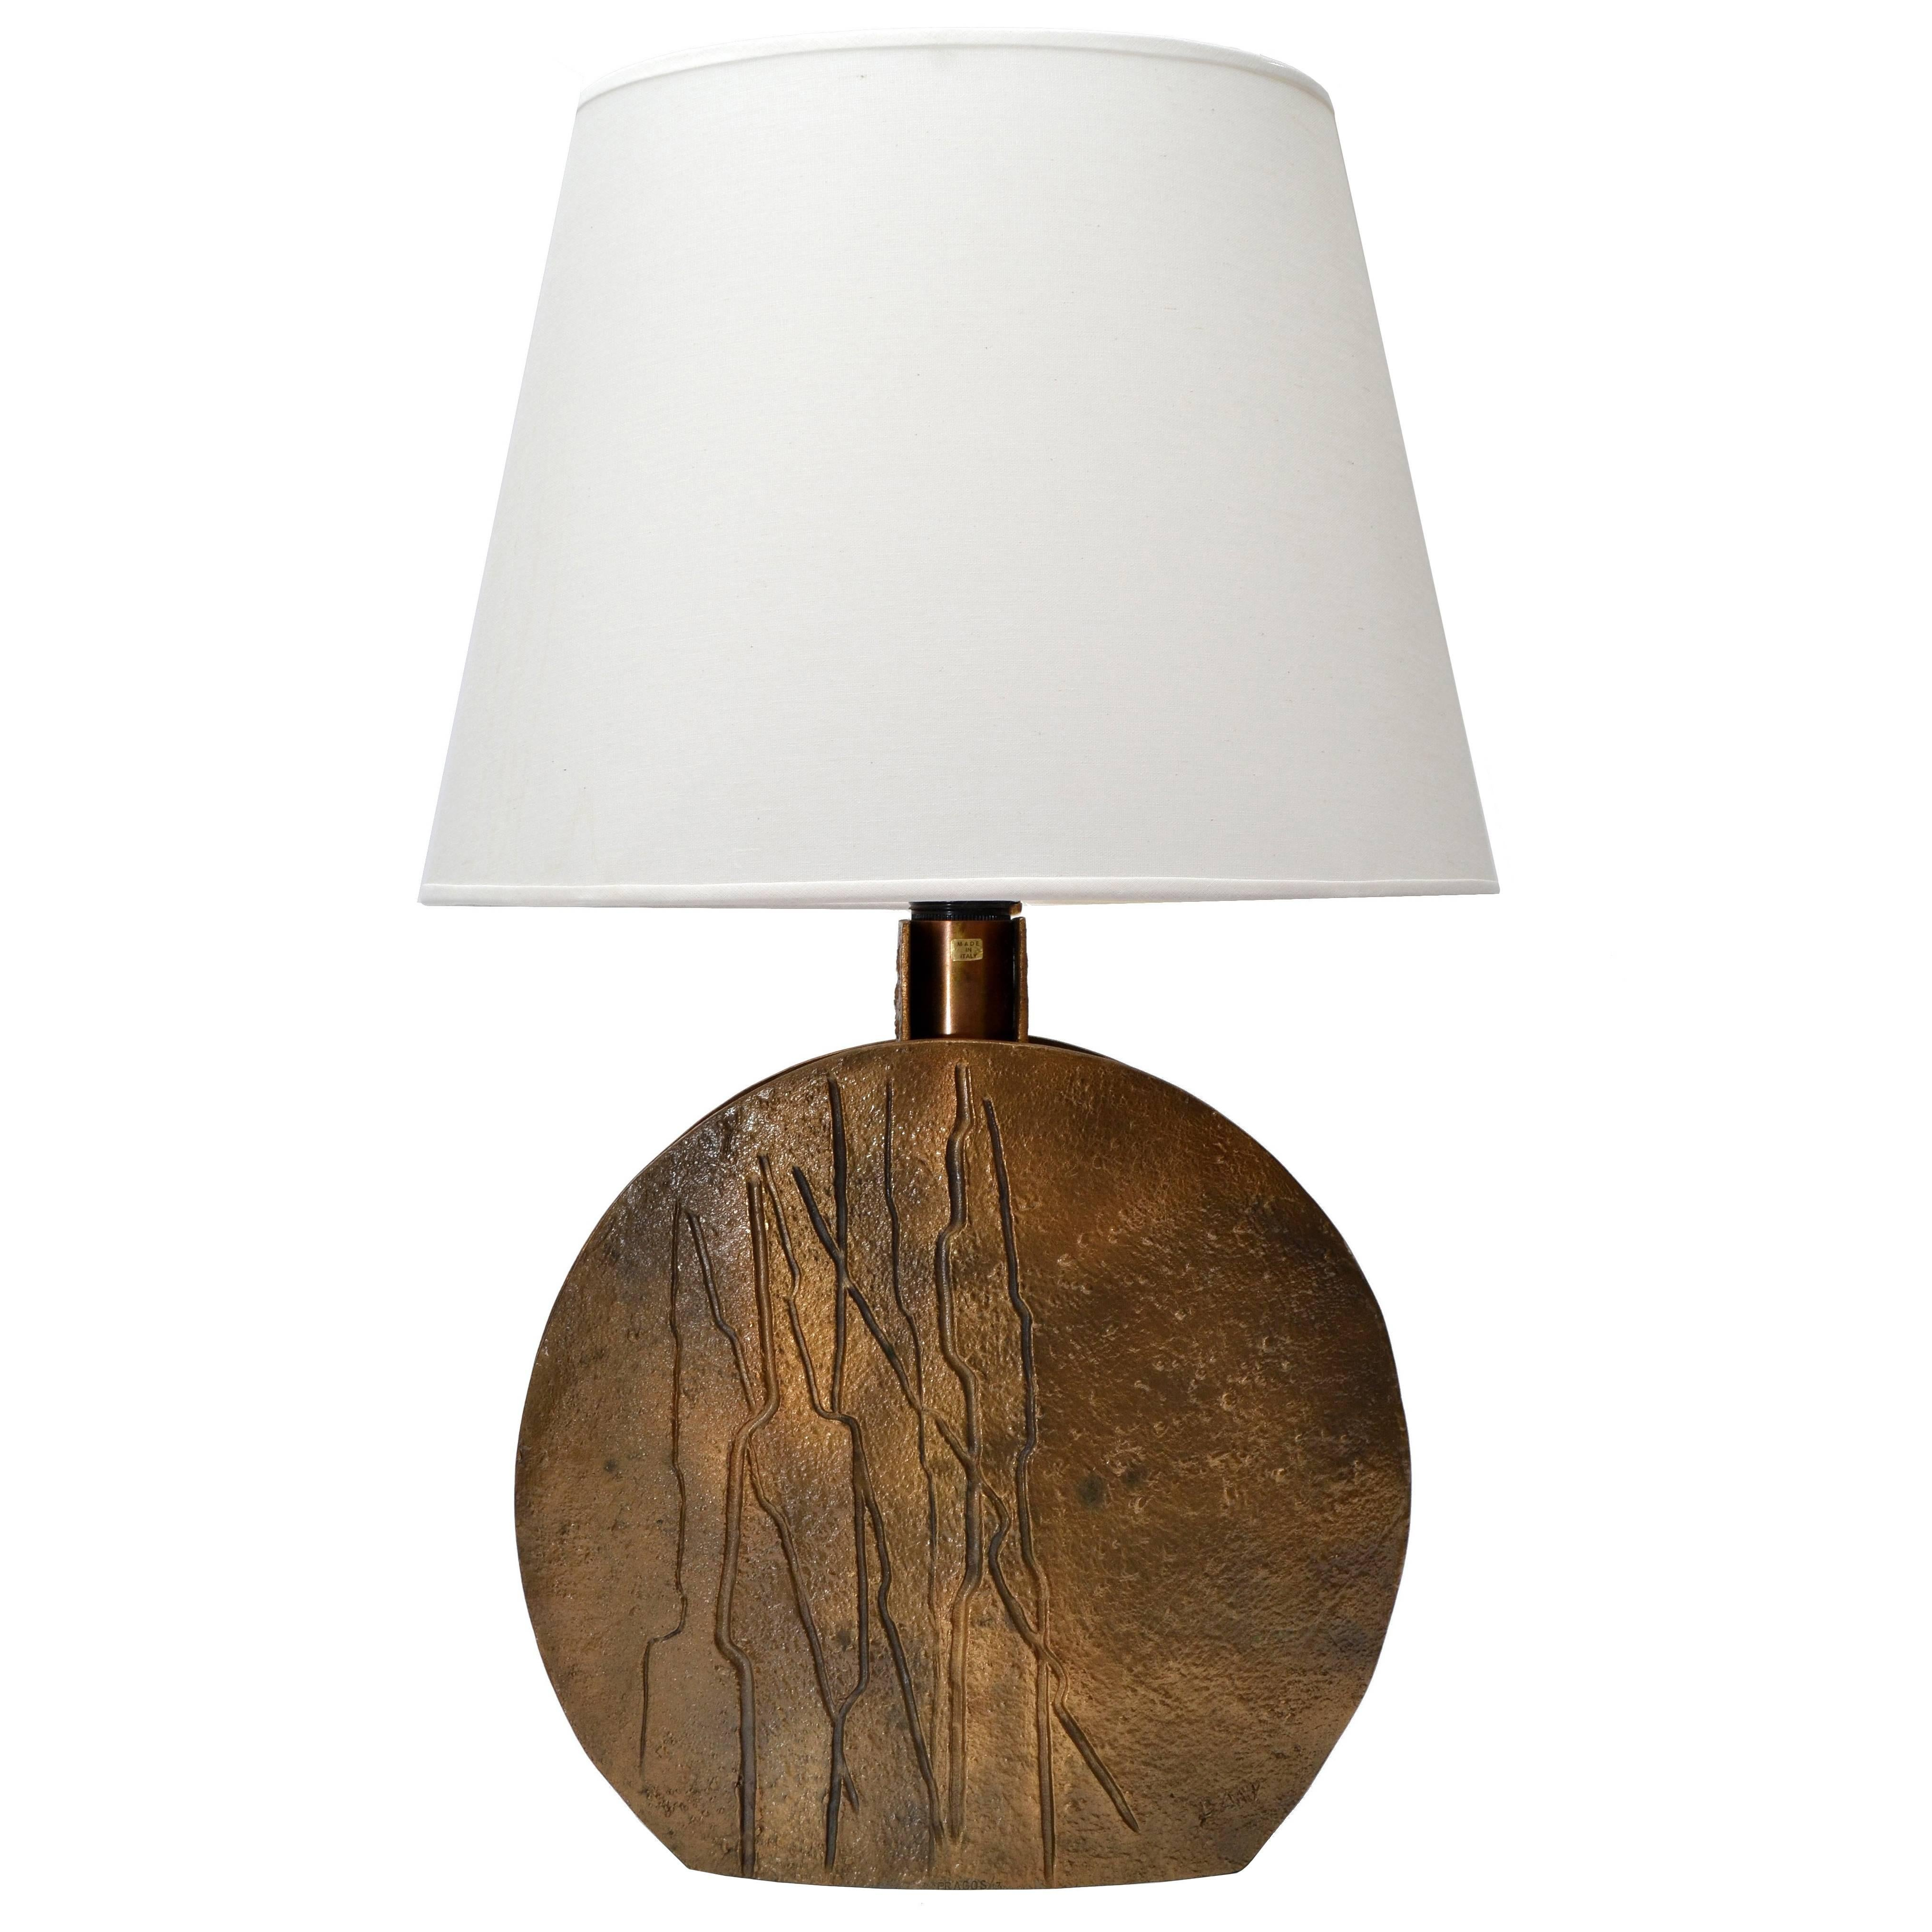 Pragos Sculpted Bronze Table Lamp, Italy For Sale at 1stdibs